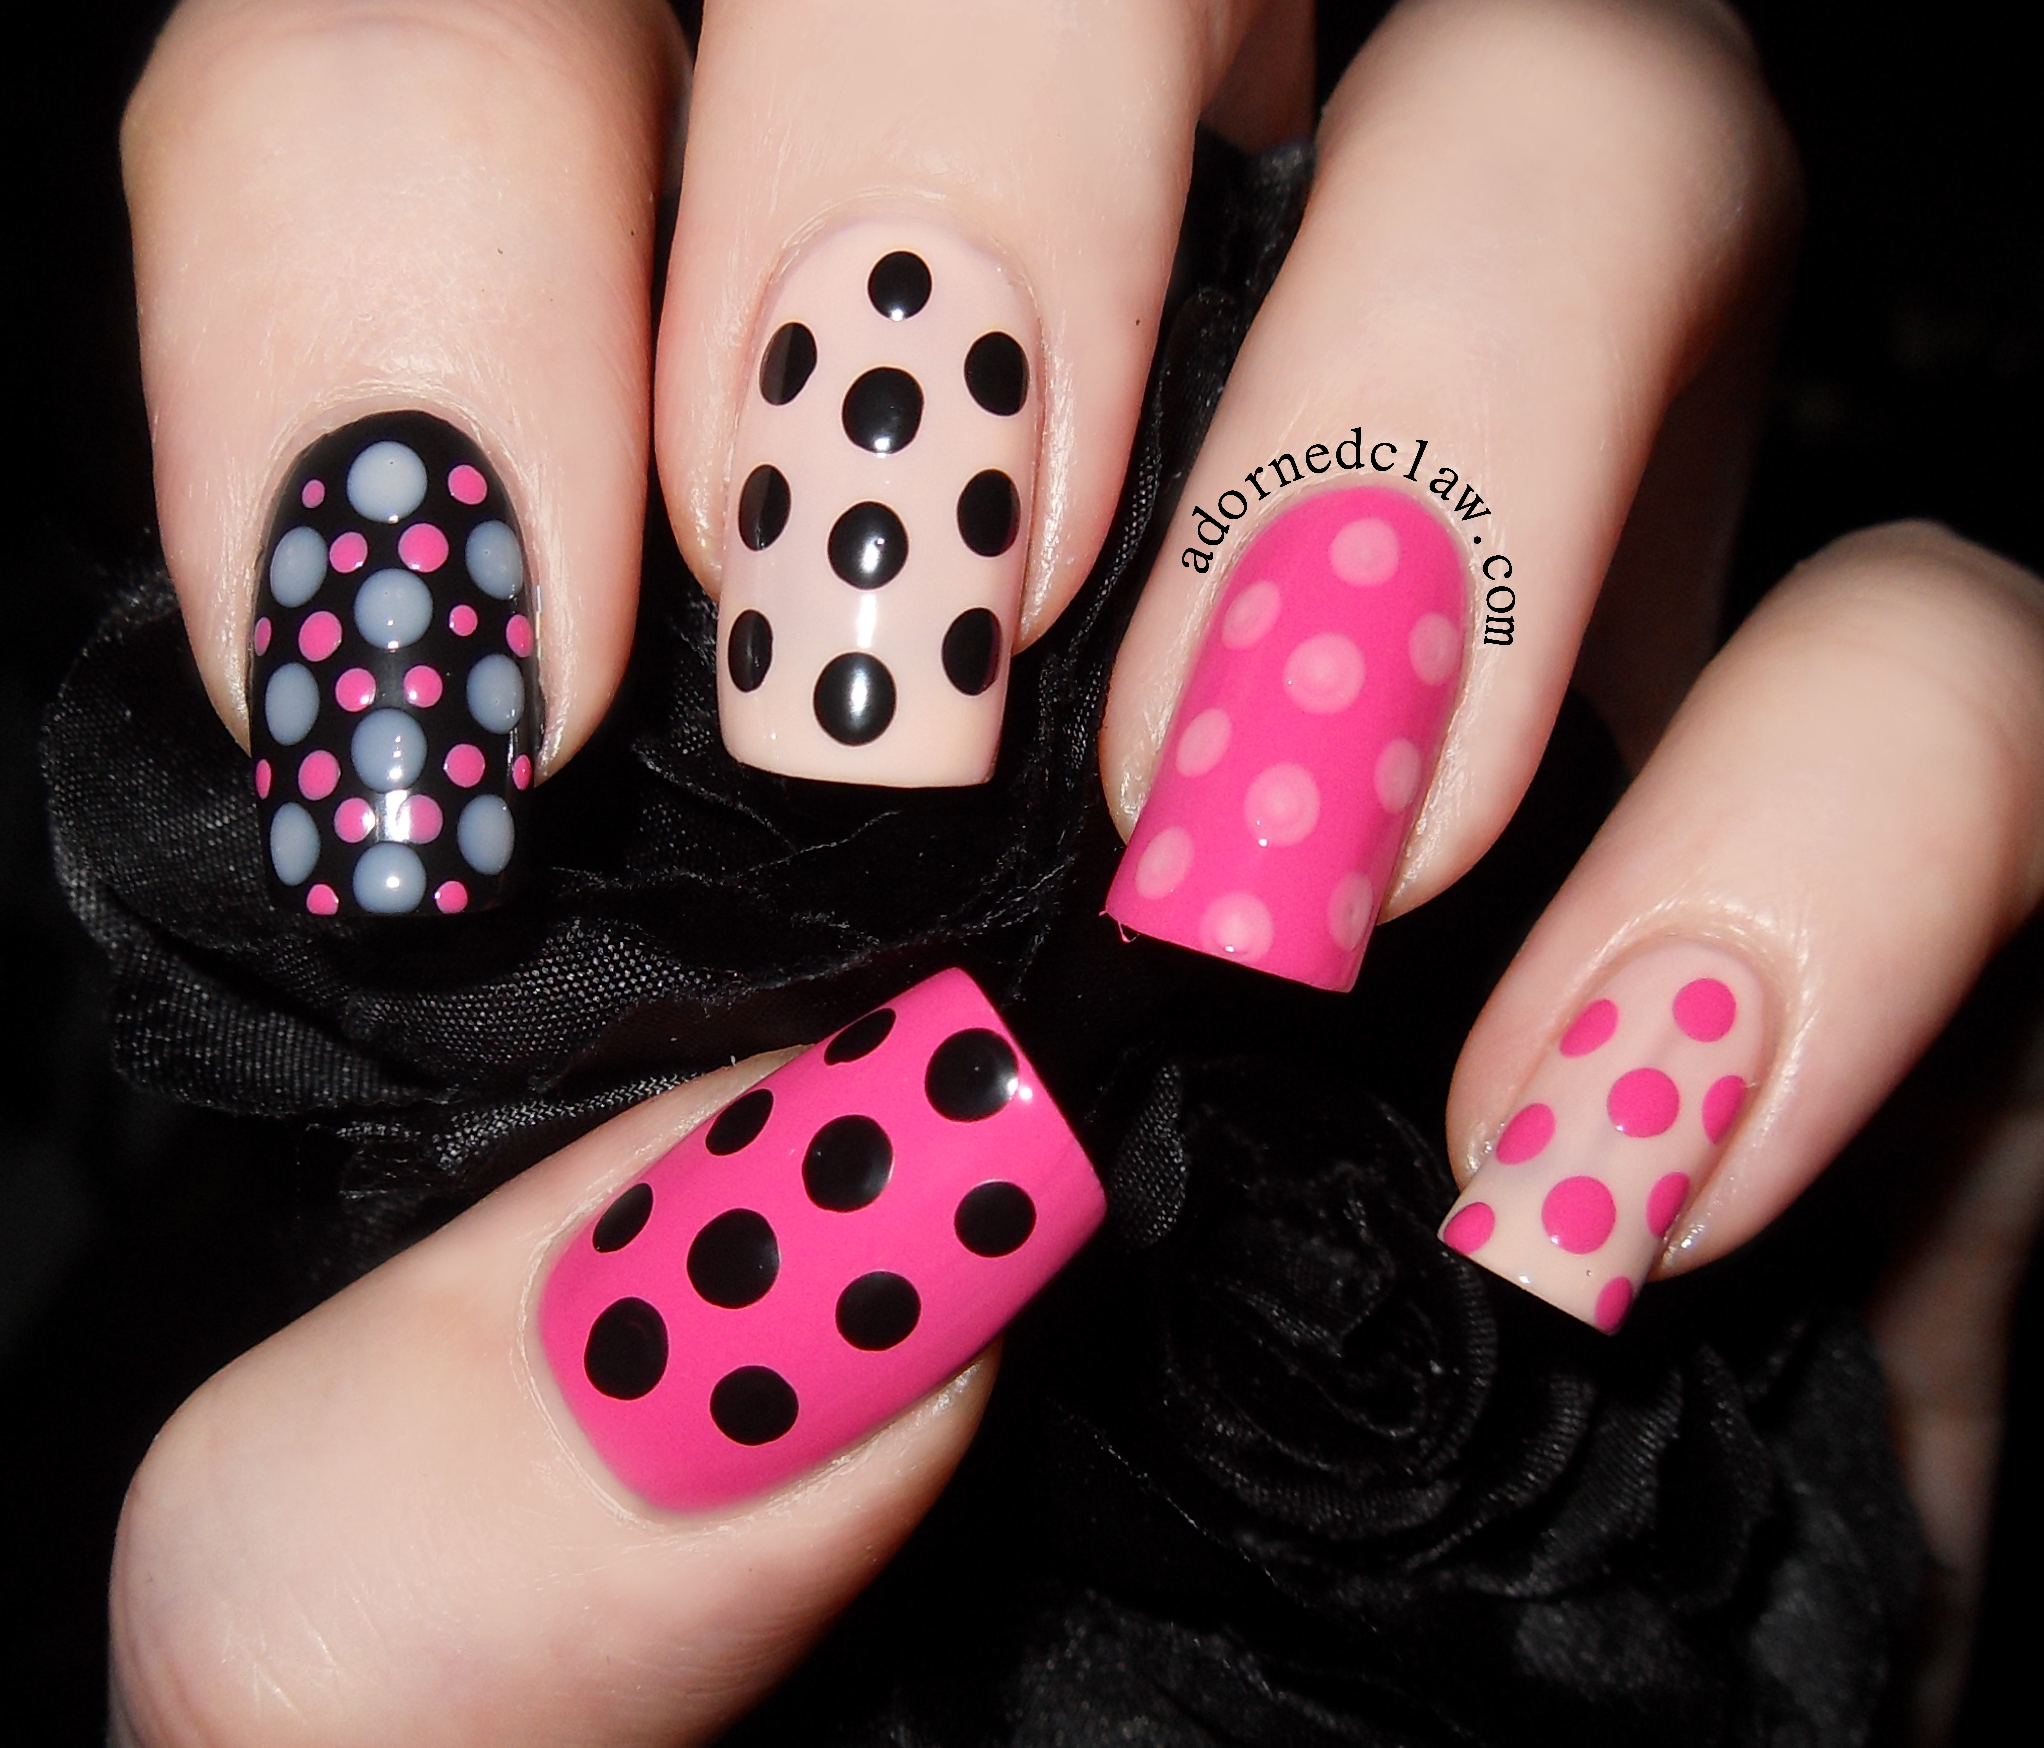 Nail Polish From Japan Beauty World Dot Artist Set The Adorned Claw